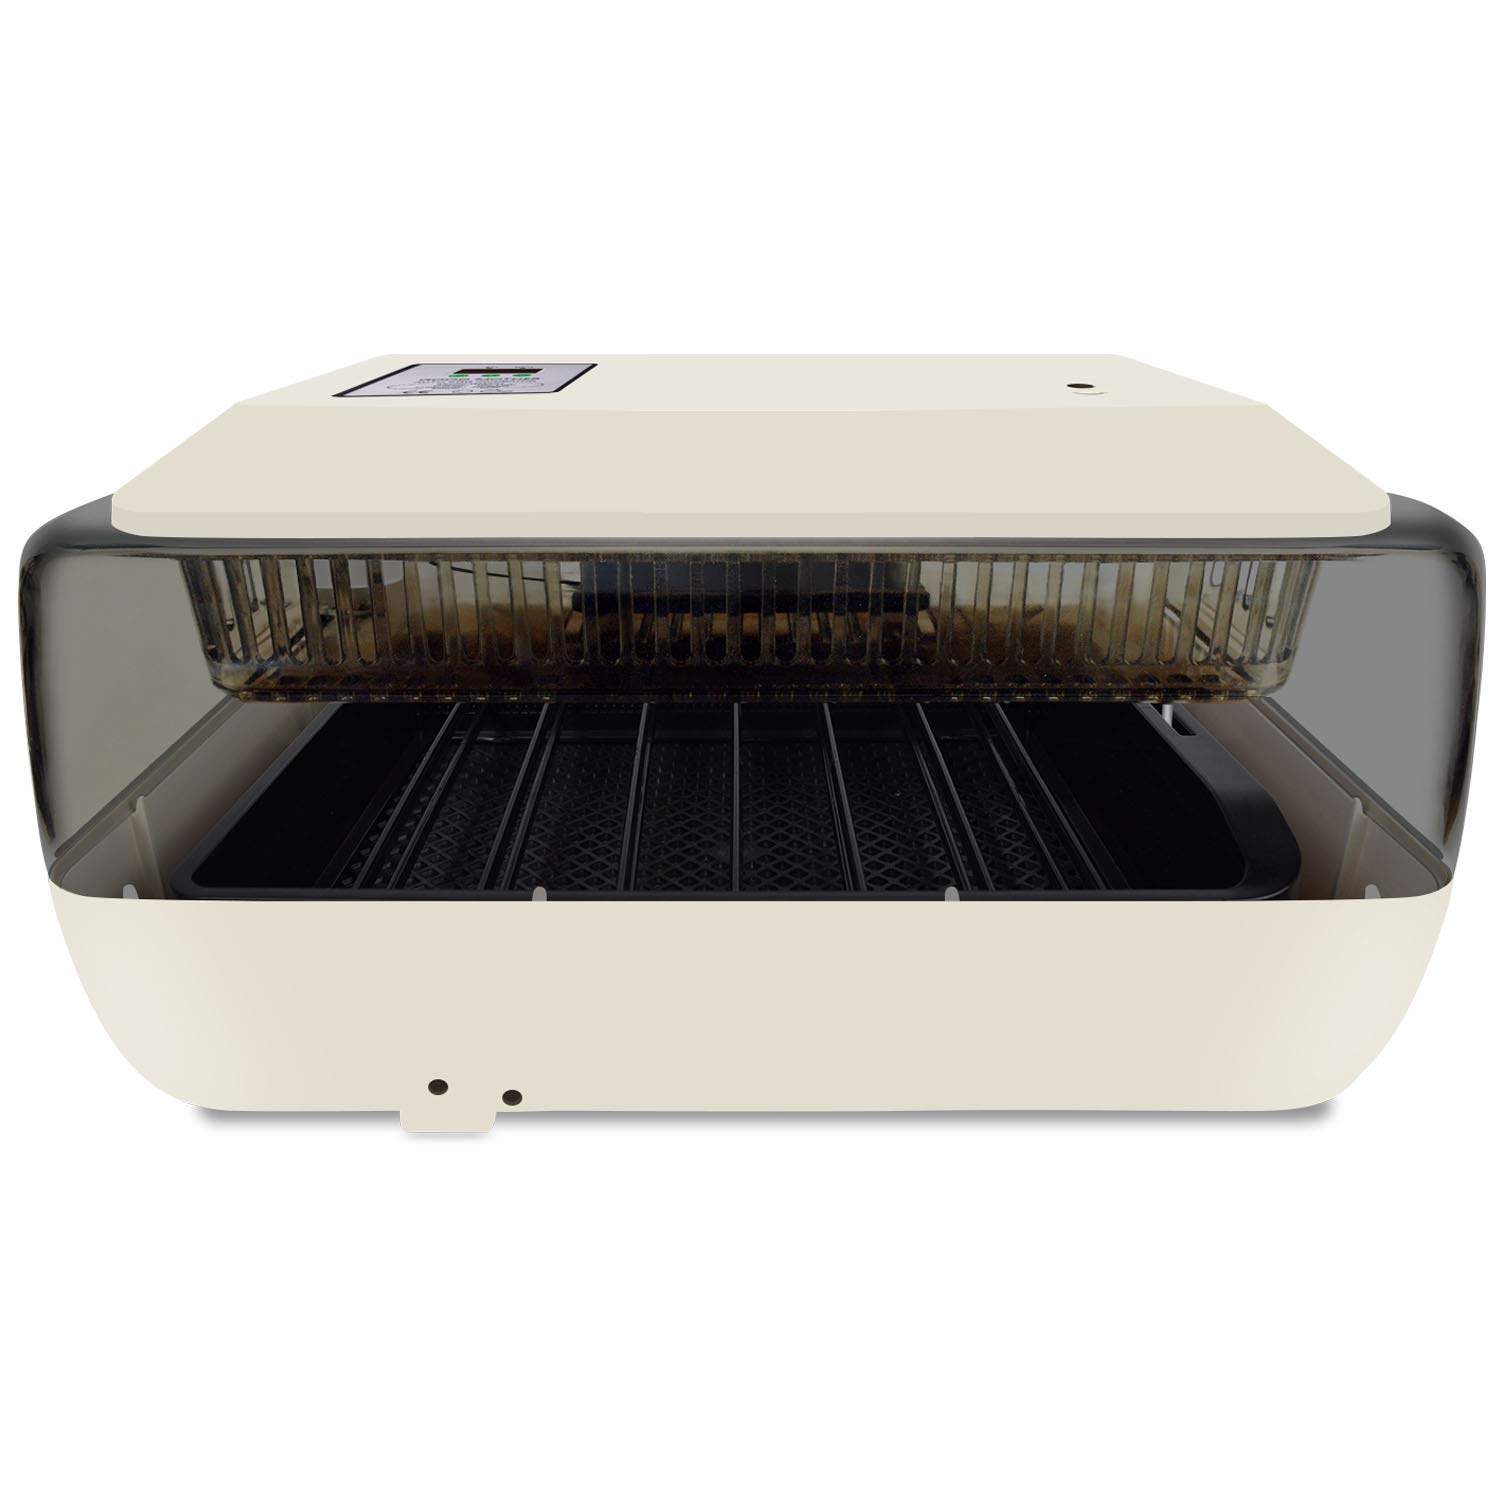 B07R2N1HX8 GOOD MOTHER Fully Automatic Egg Incubator Celsius 24-30 Eggs Incubators for Hatching Chickens Ducks Geese Birds Quail Eggs 61JhRukouBL._SL1500_